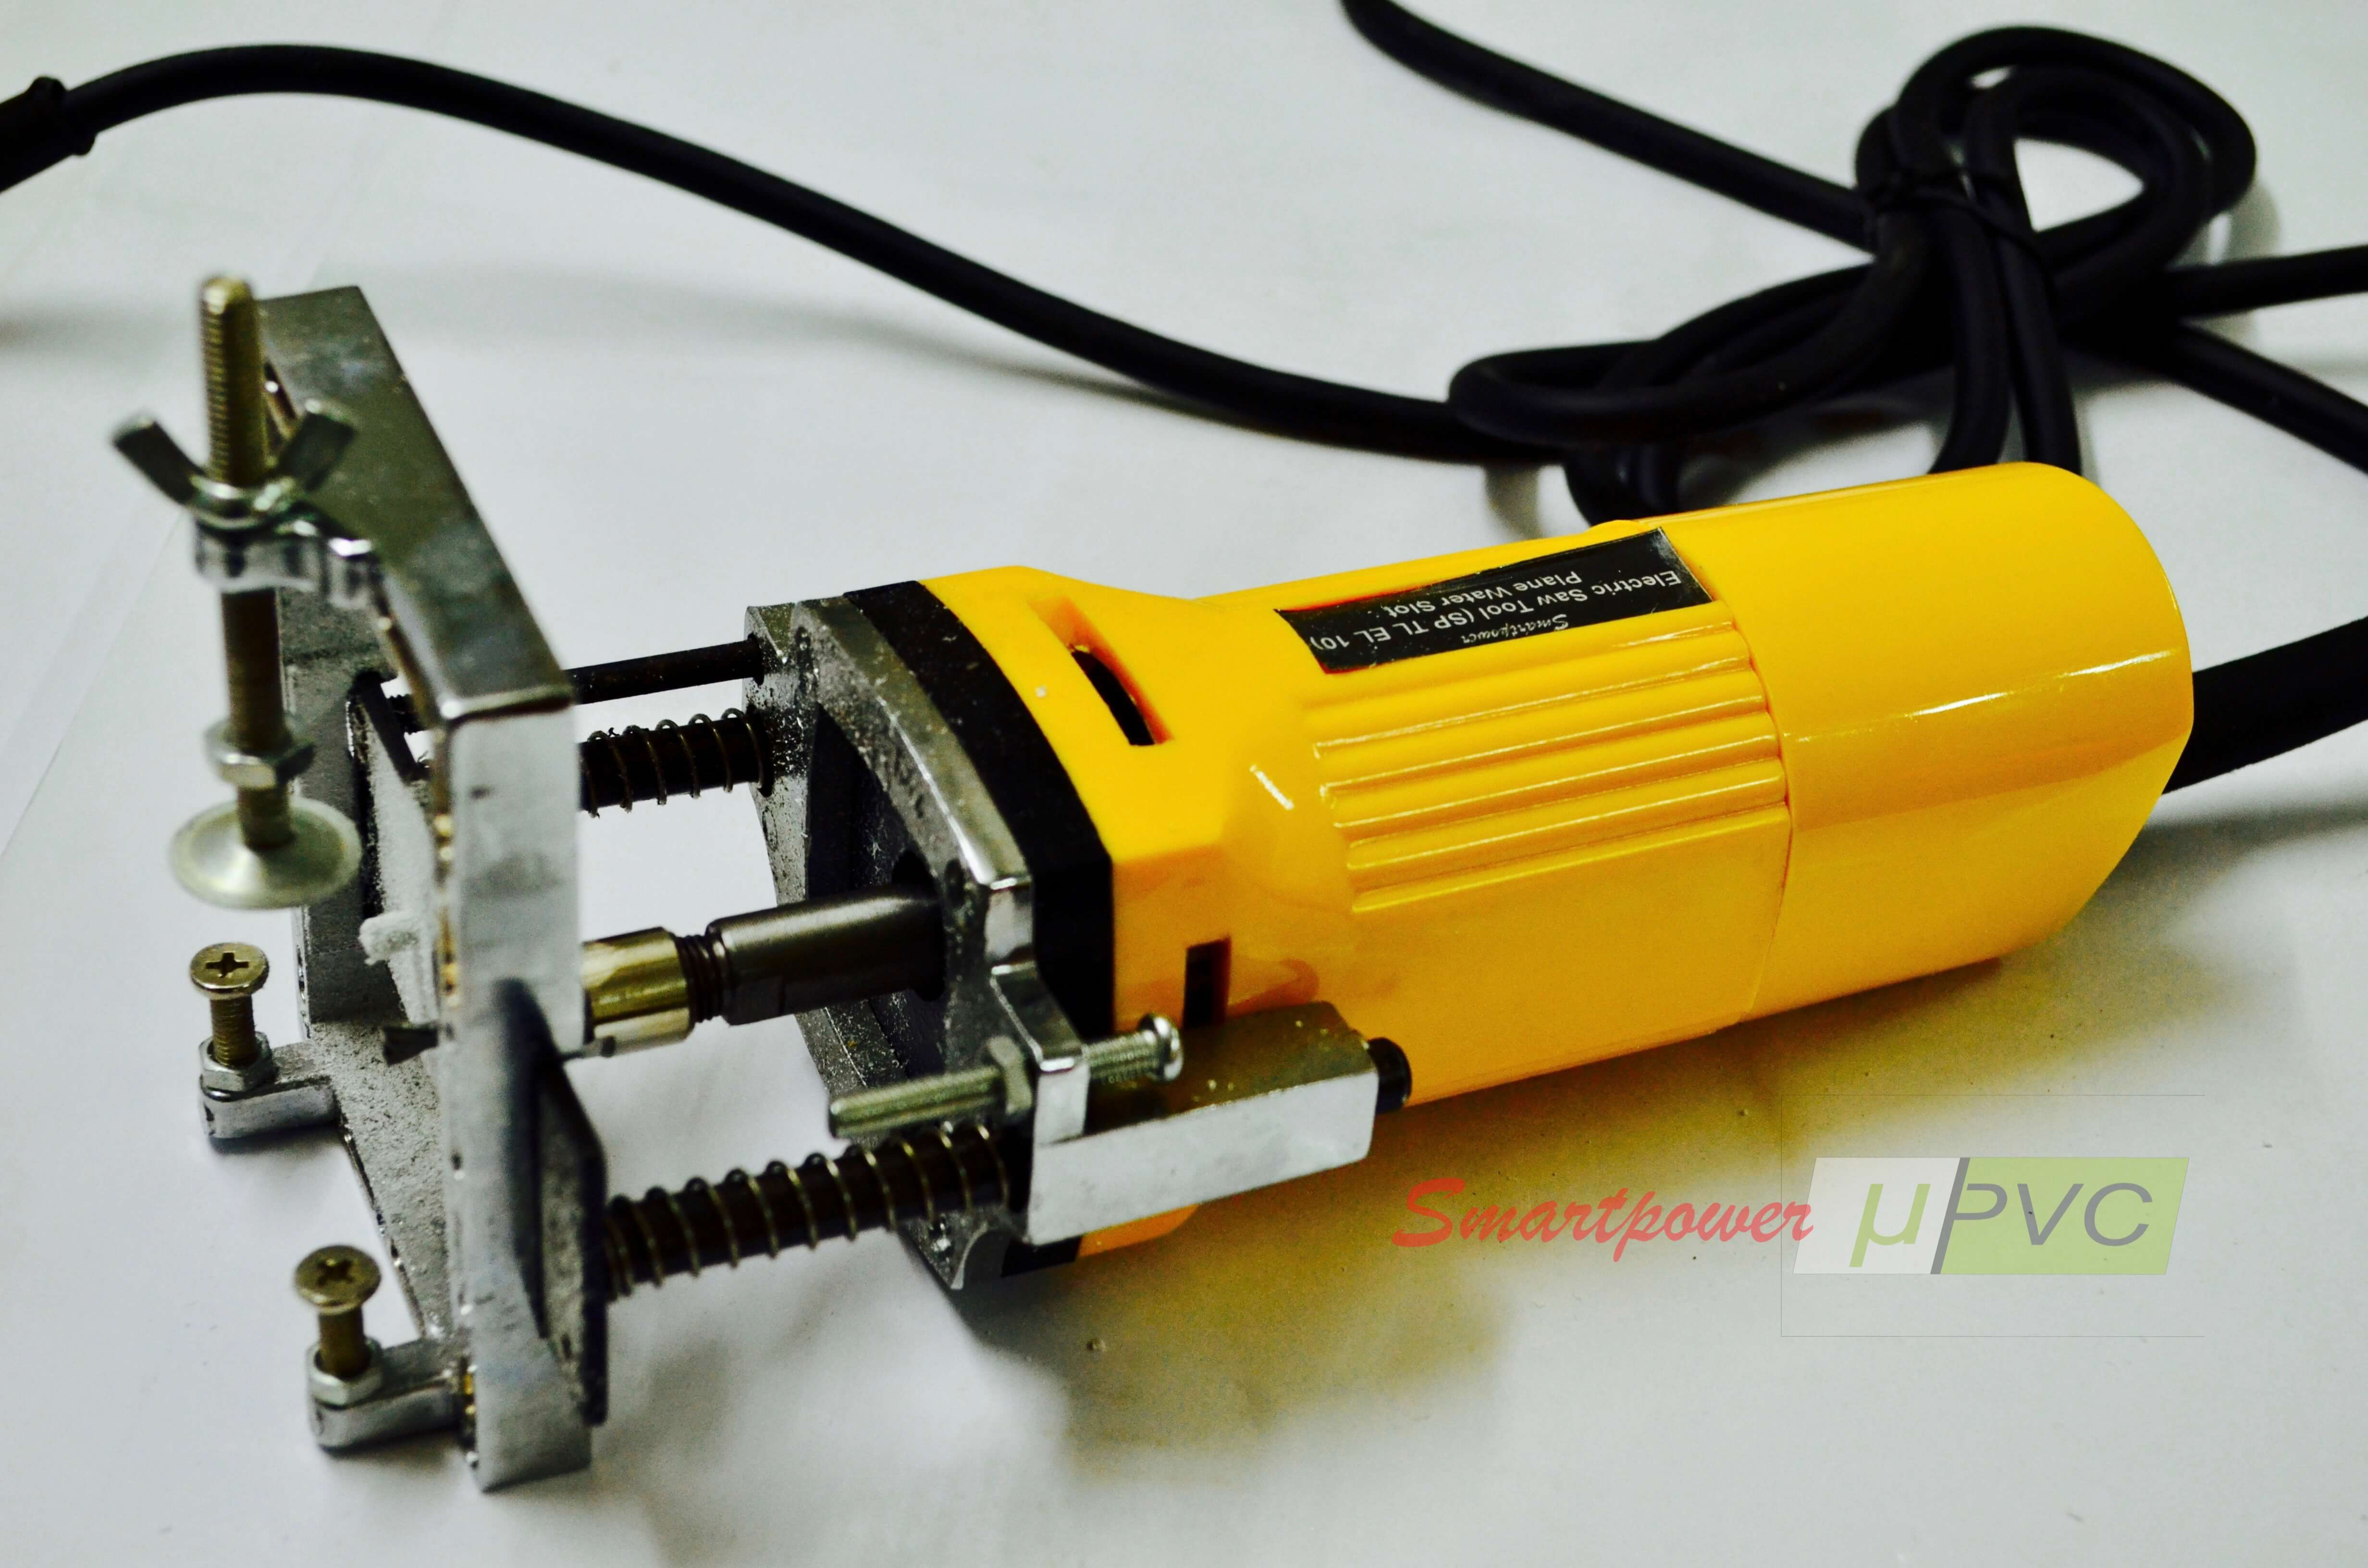 Electric tool for Water slot cutting